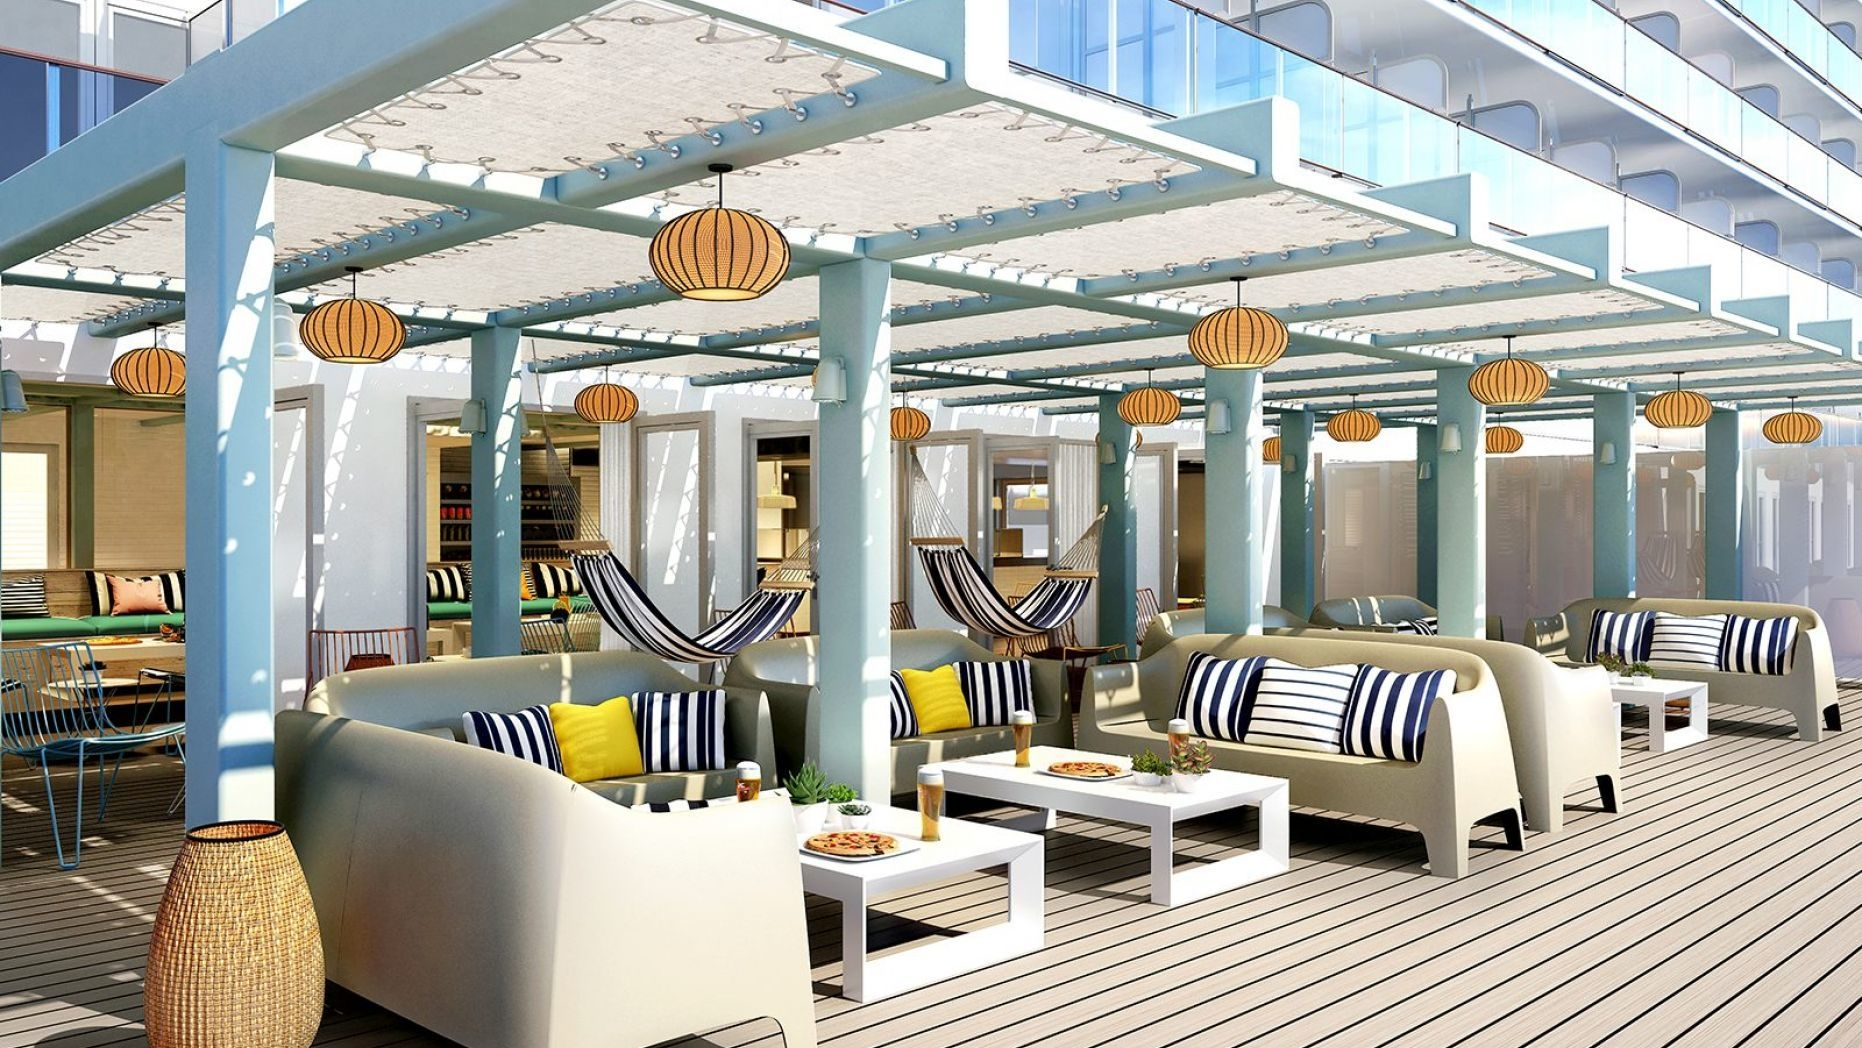 A cruise ship with No buffet, No main dining room, No dining times?? Yes, you read that right!